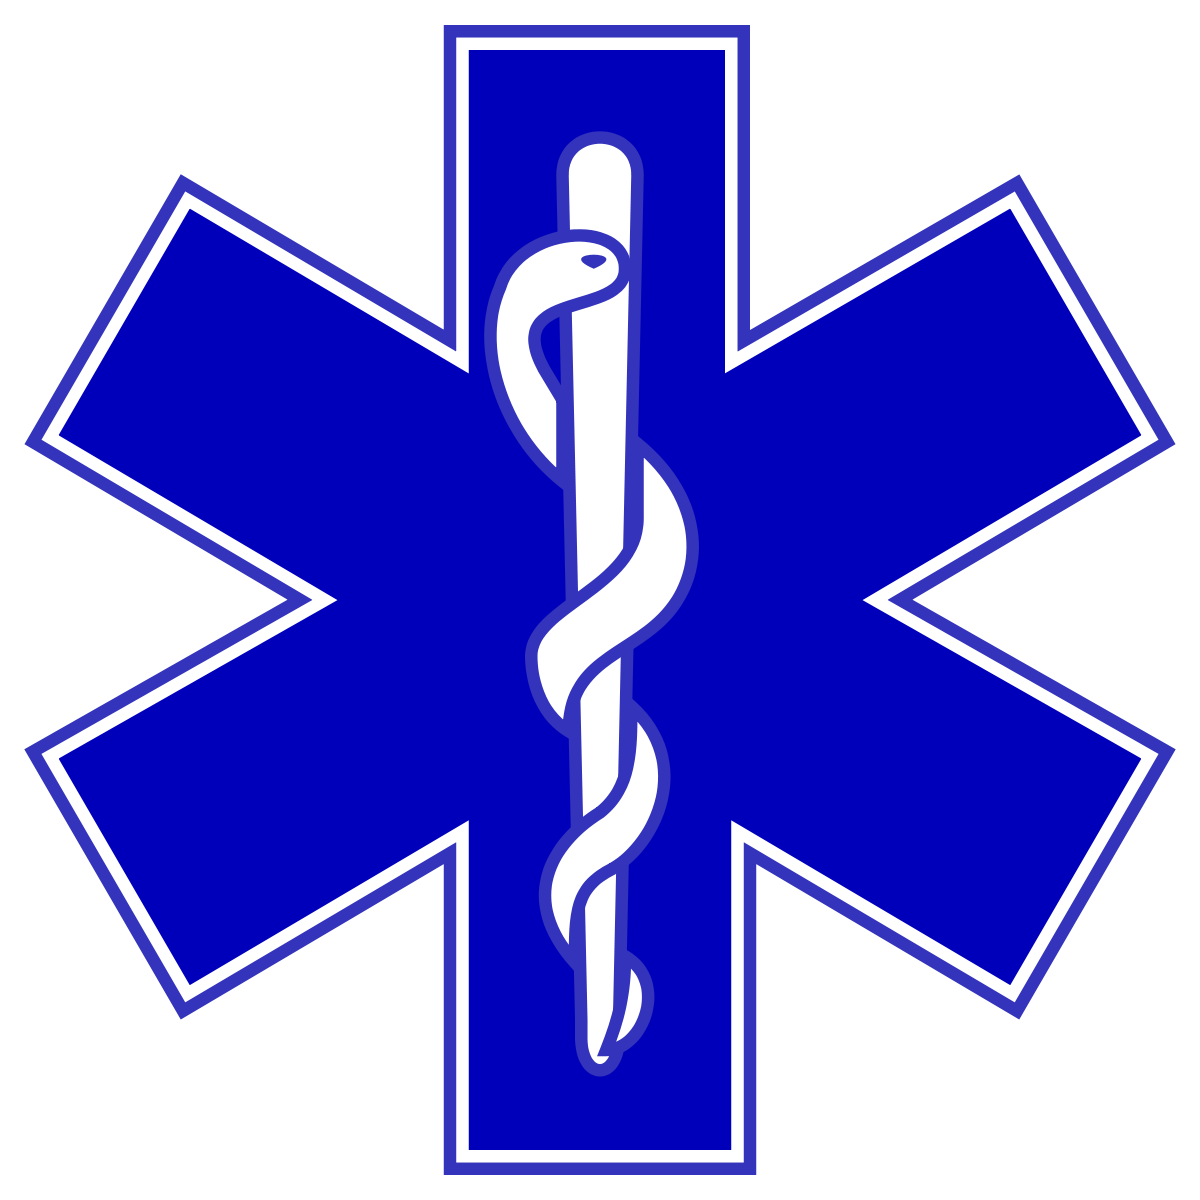 Emergency medical technician wikipedia. Drivers license clipart generic